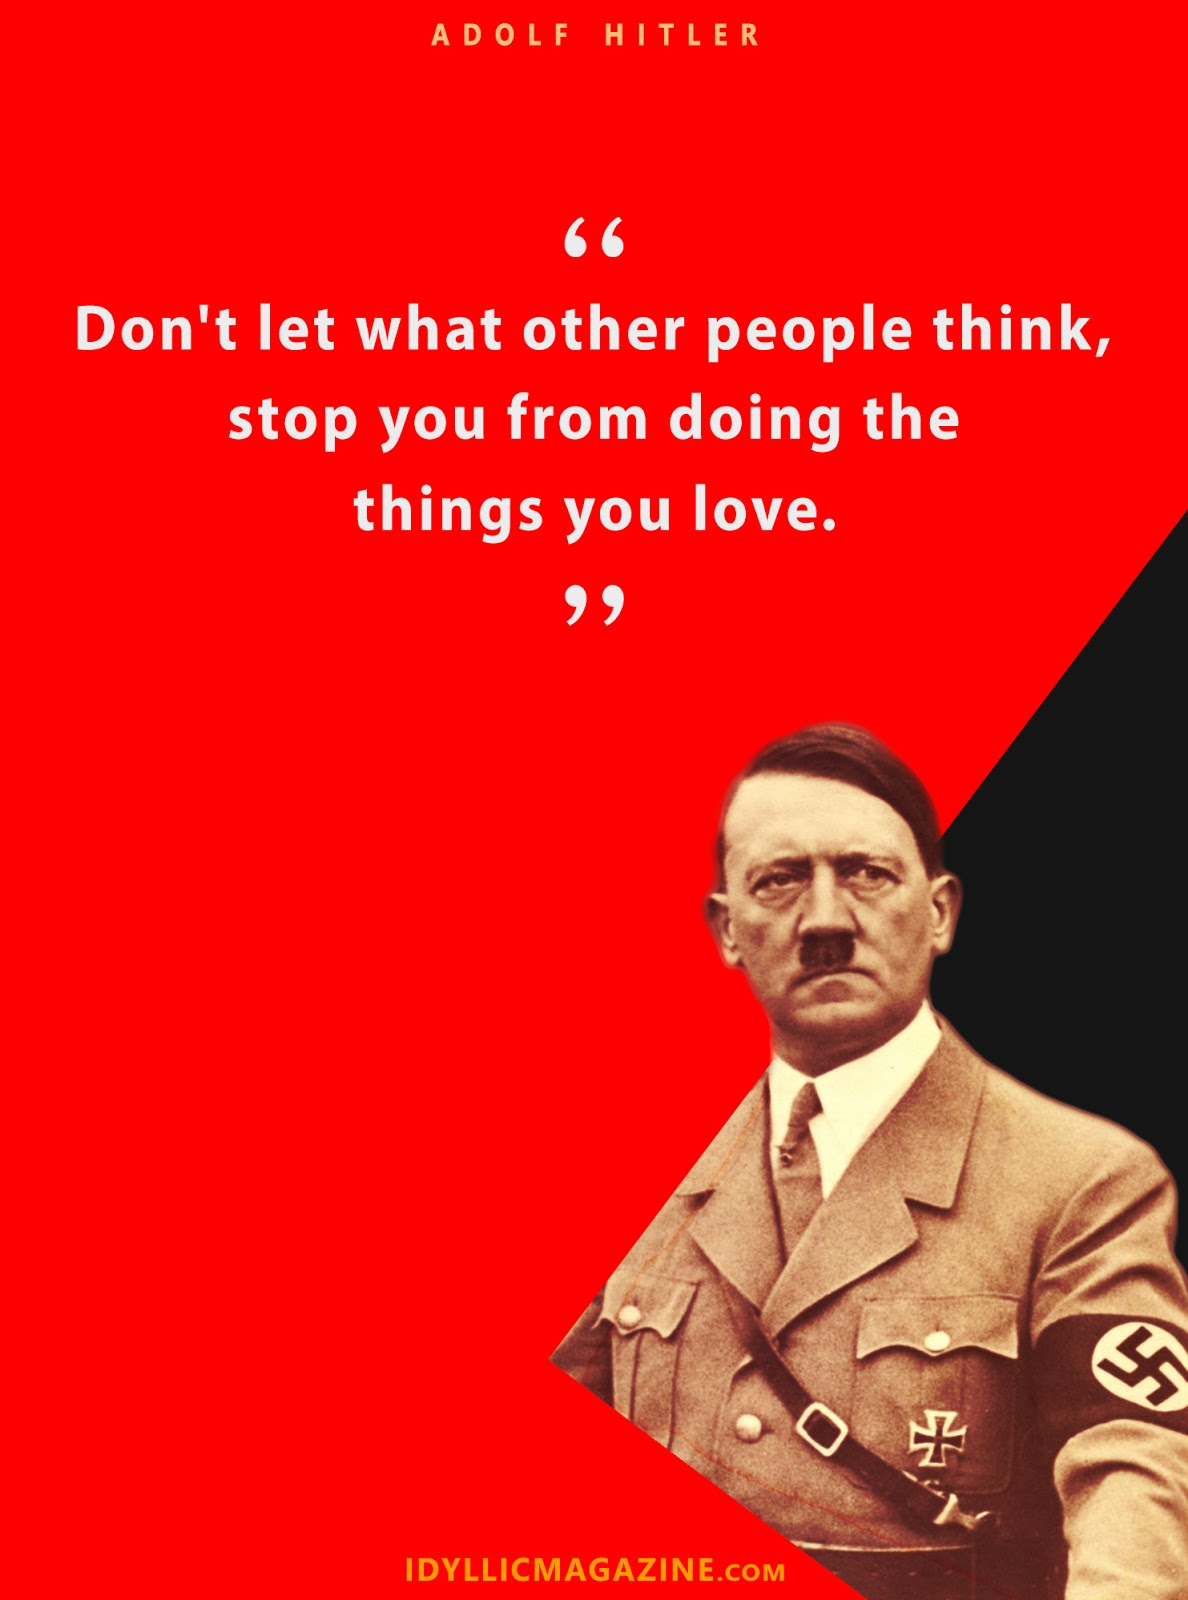 Hitler Quotes About Love : hitler, quotes, about, Optimistic, Quotes, Adolf, Hitler, Inspire, Idyllic, Magazine